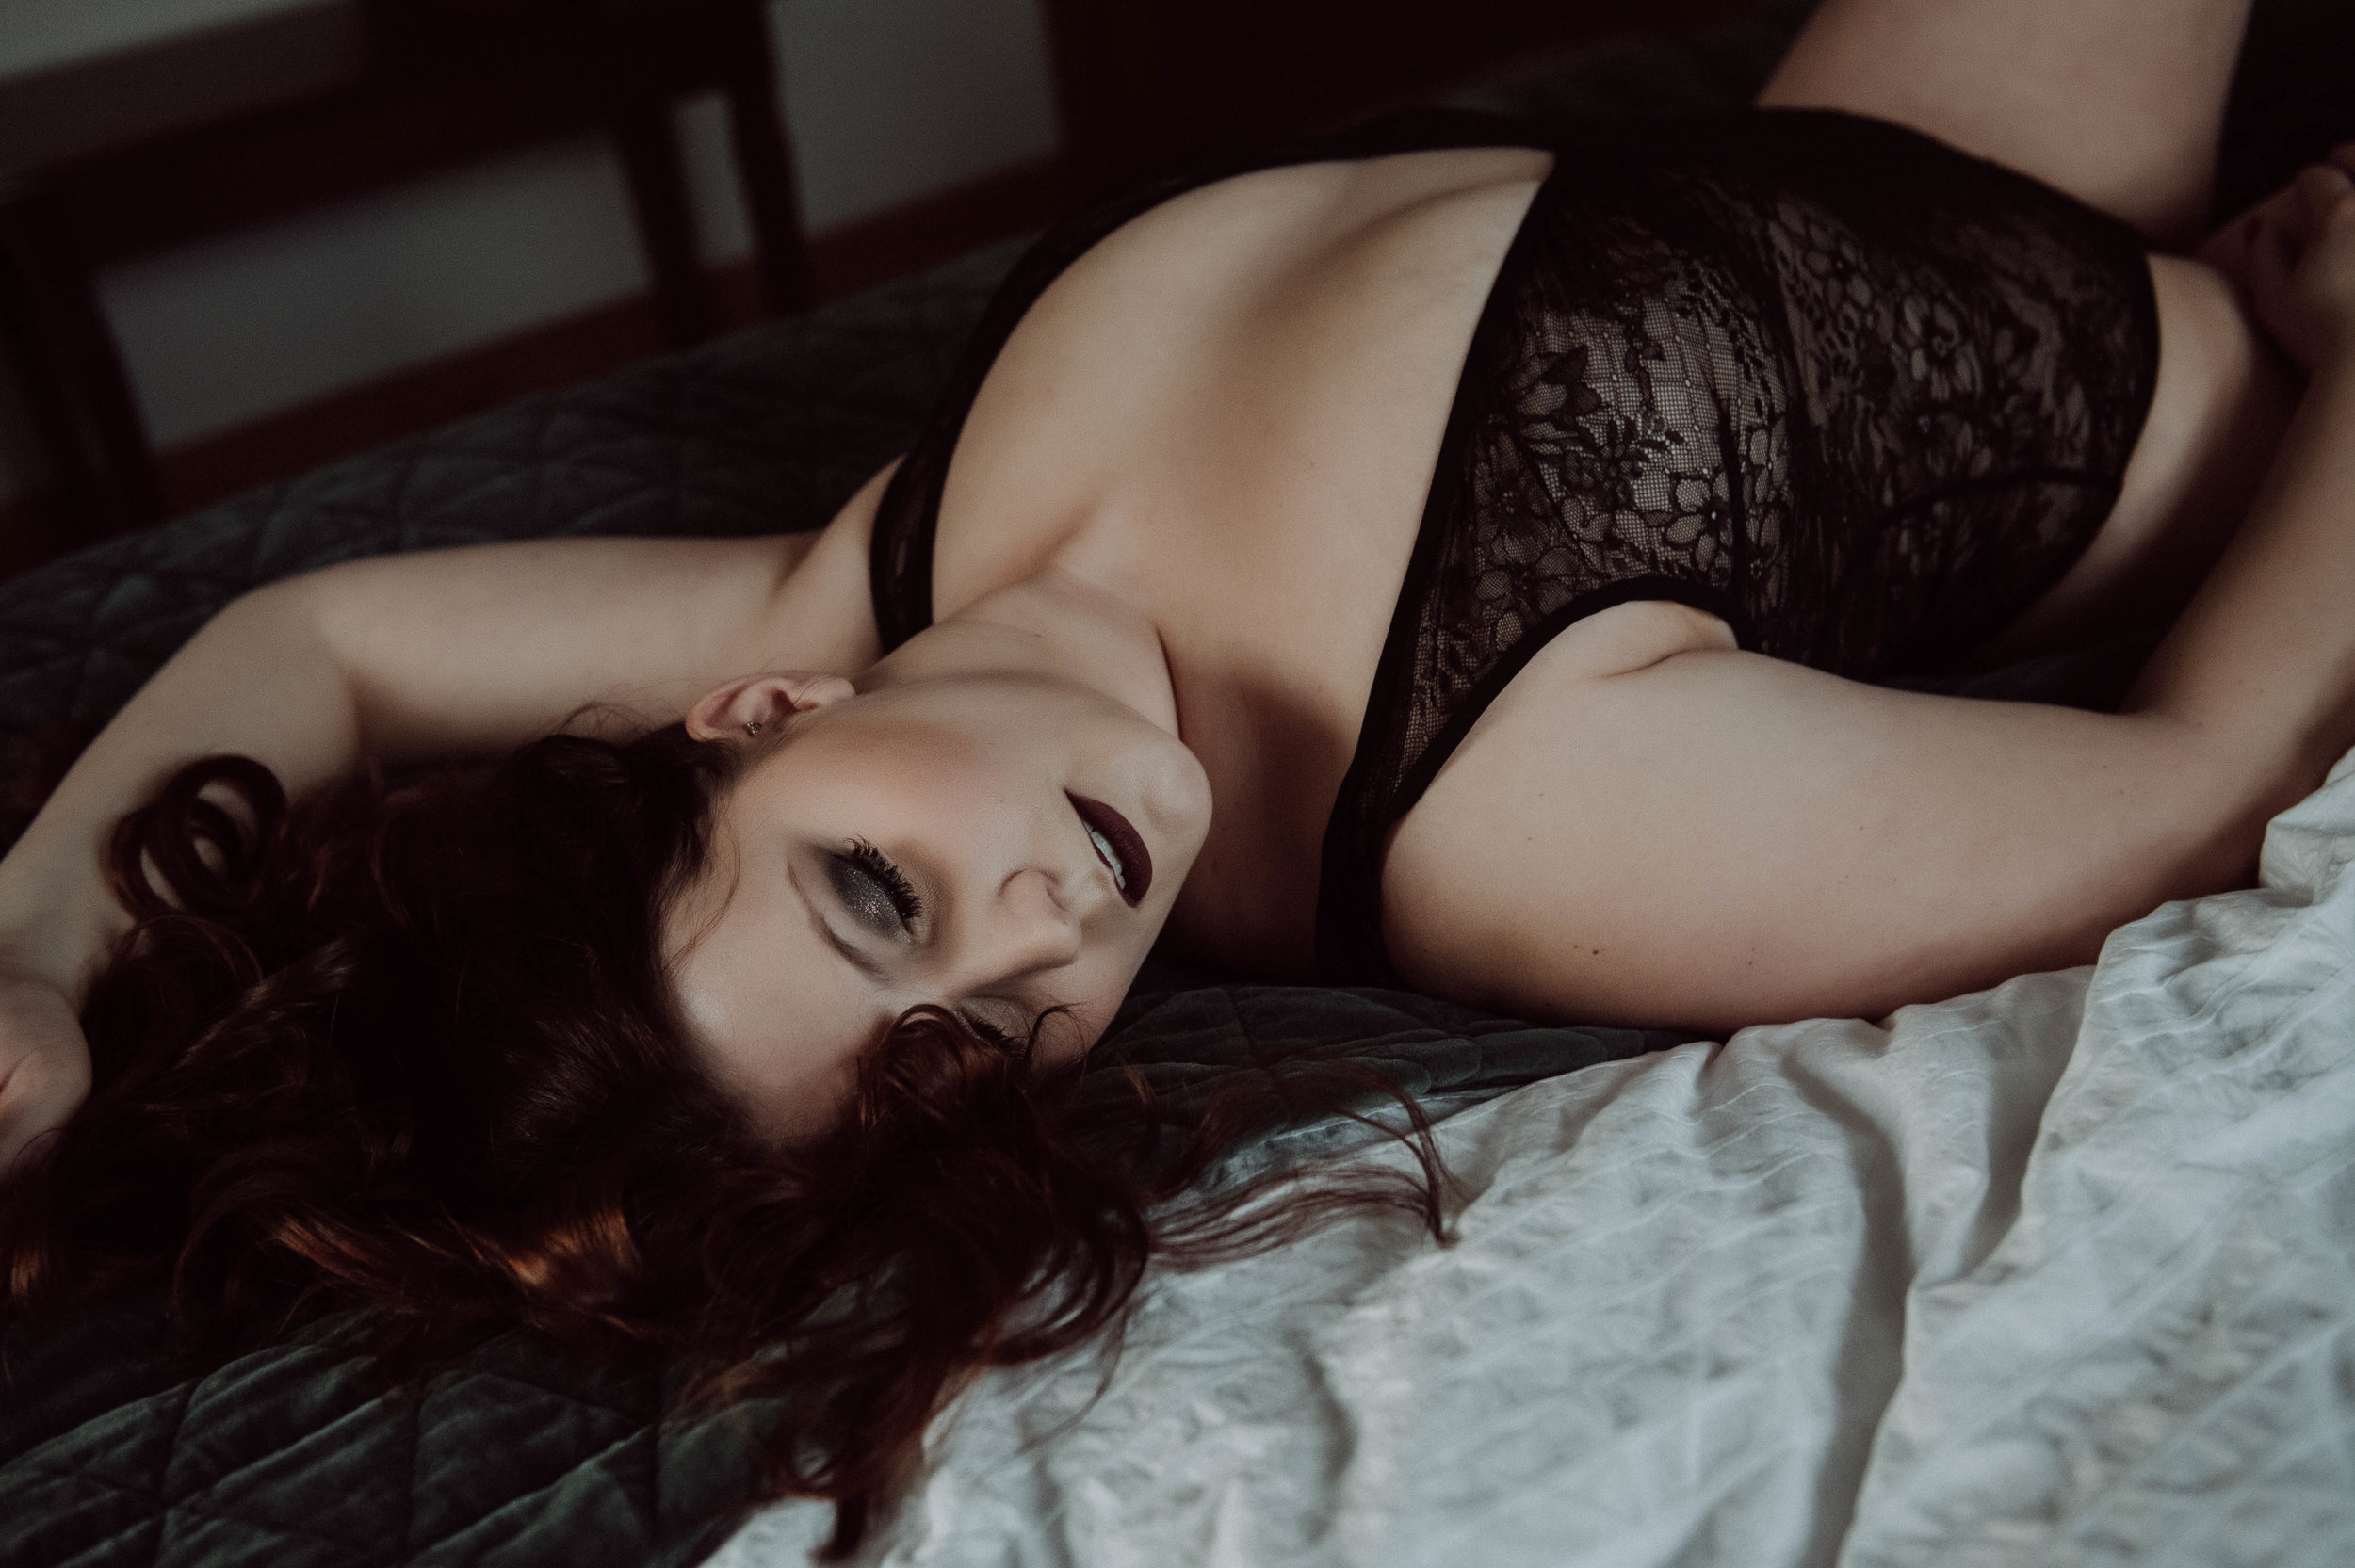 Brunette laying on bed in black body suit sexy  boudoir photography new york city bedroom